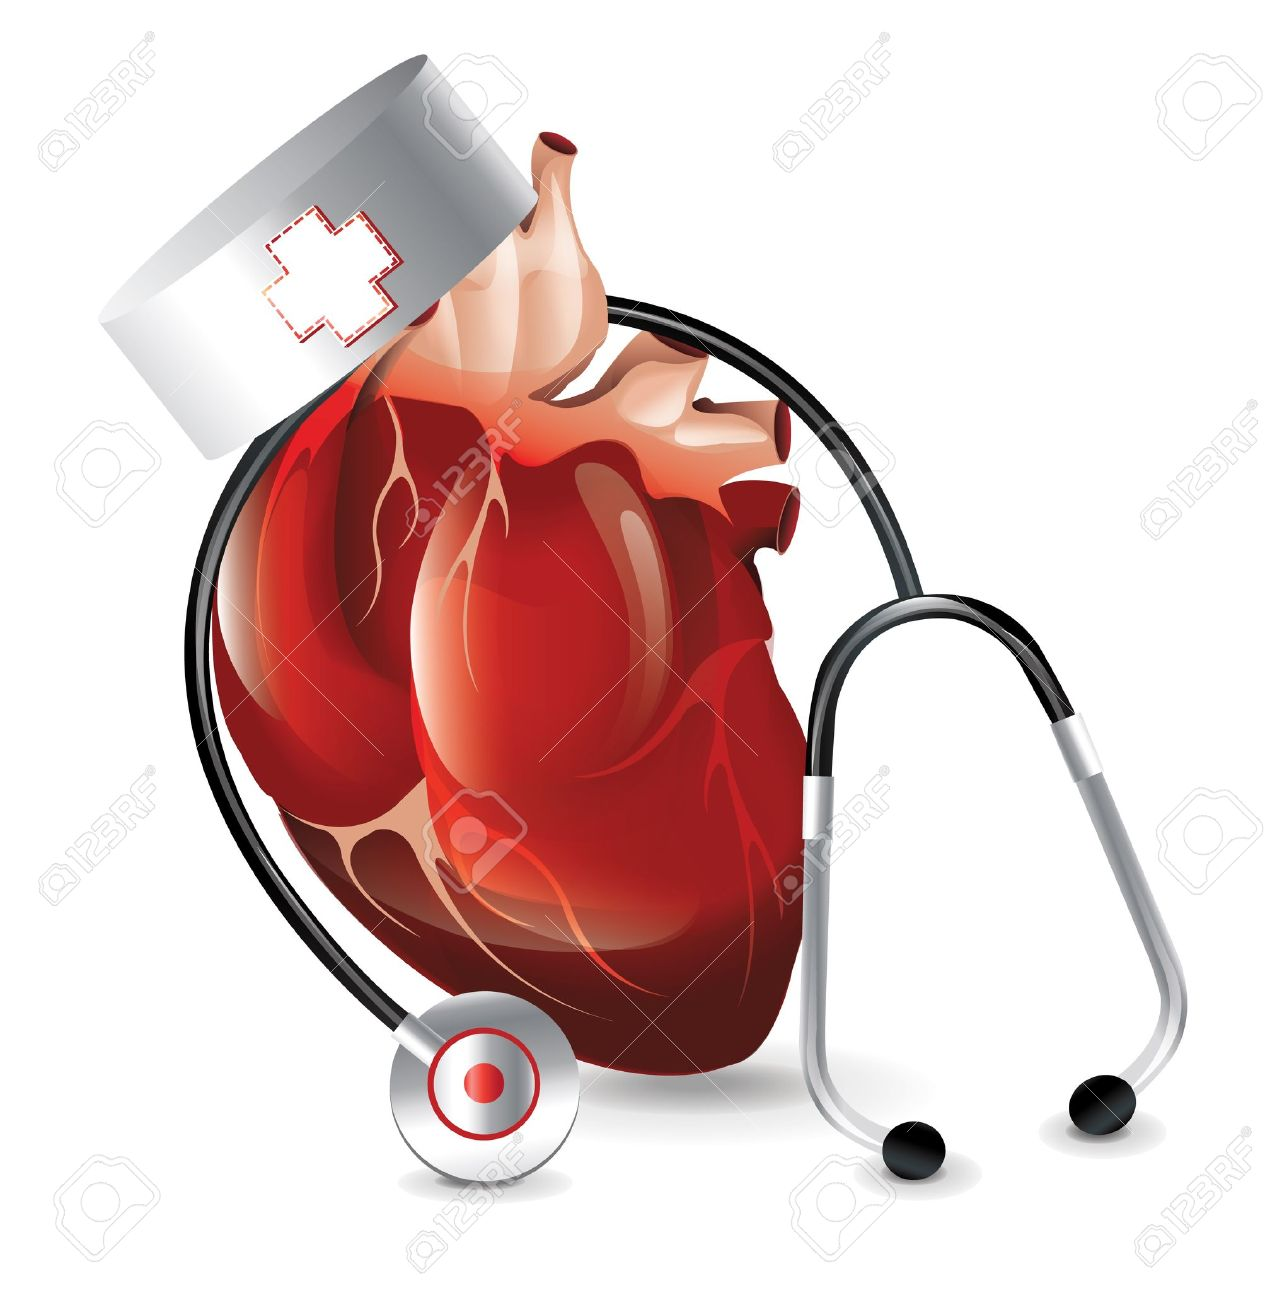 realistic heart doctor royalty free cliparts vectors and stock rh 123rf com Woman Doctor Clip Art Vintage Heart Clip Art